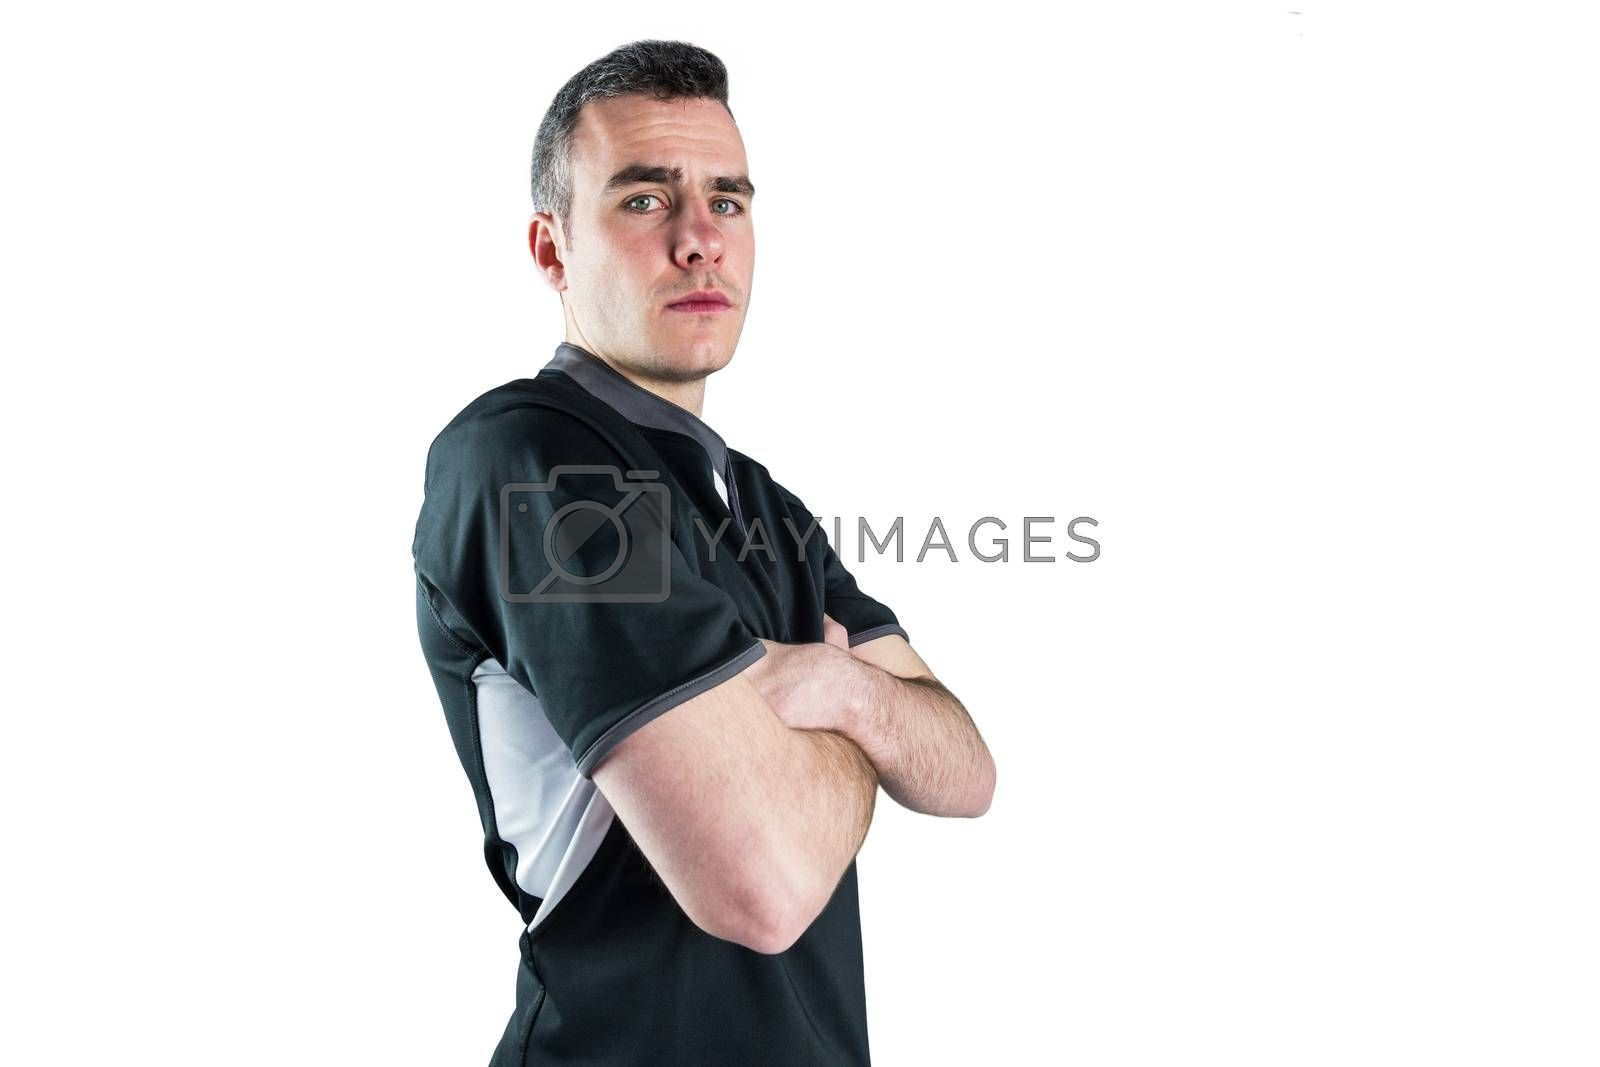 Royalty free image of Frowning rugby player with arms crossed by Wavebreakmedia